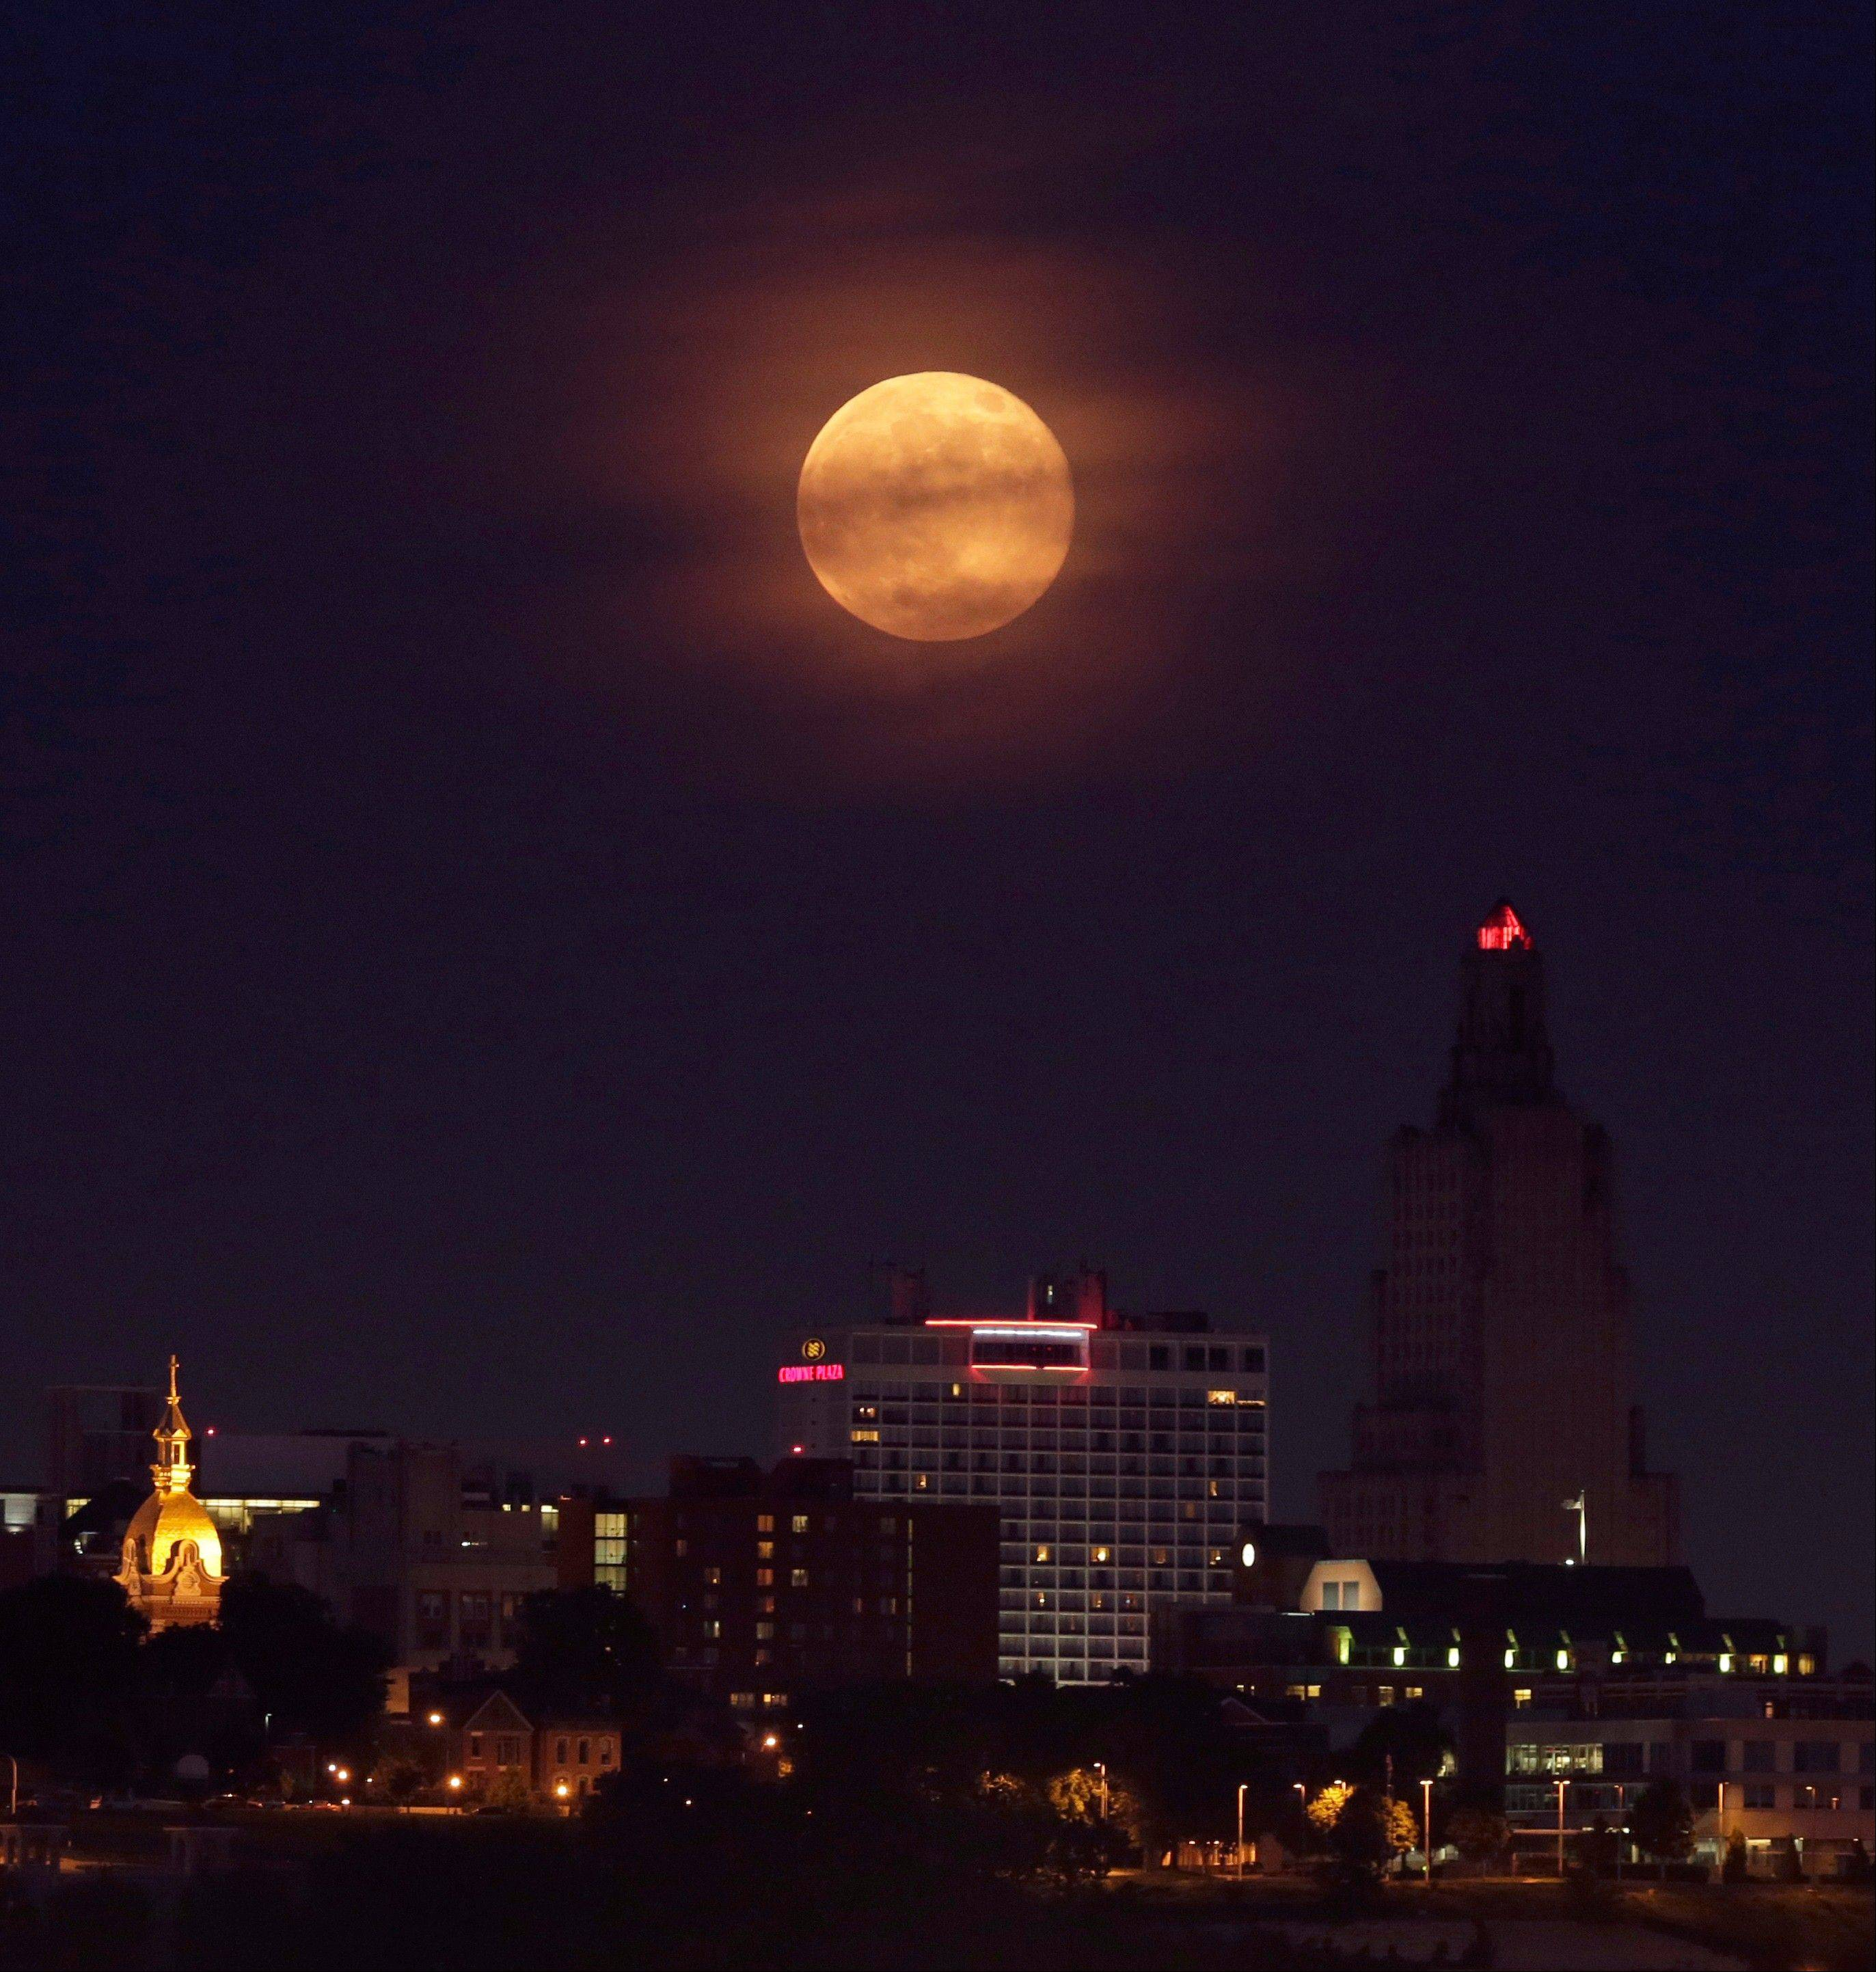 A full moon rises through clouds behind downtown buildings Sunday, June 23, 2013, in Kansas City, Mo. The so-called supermoon appeared up to 14 percent larger than normal as our celestial neighbor swung closer to Earth, reaching its closest distance early Sunday morning.